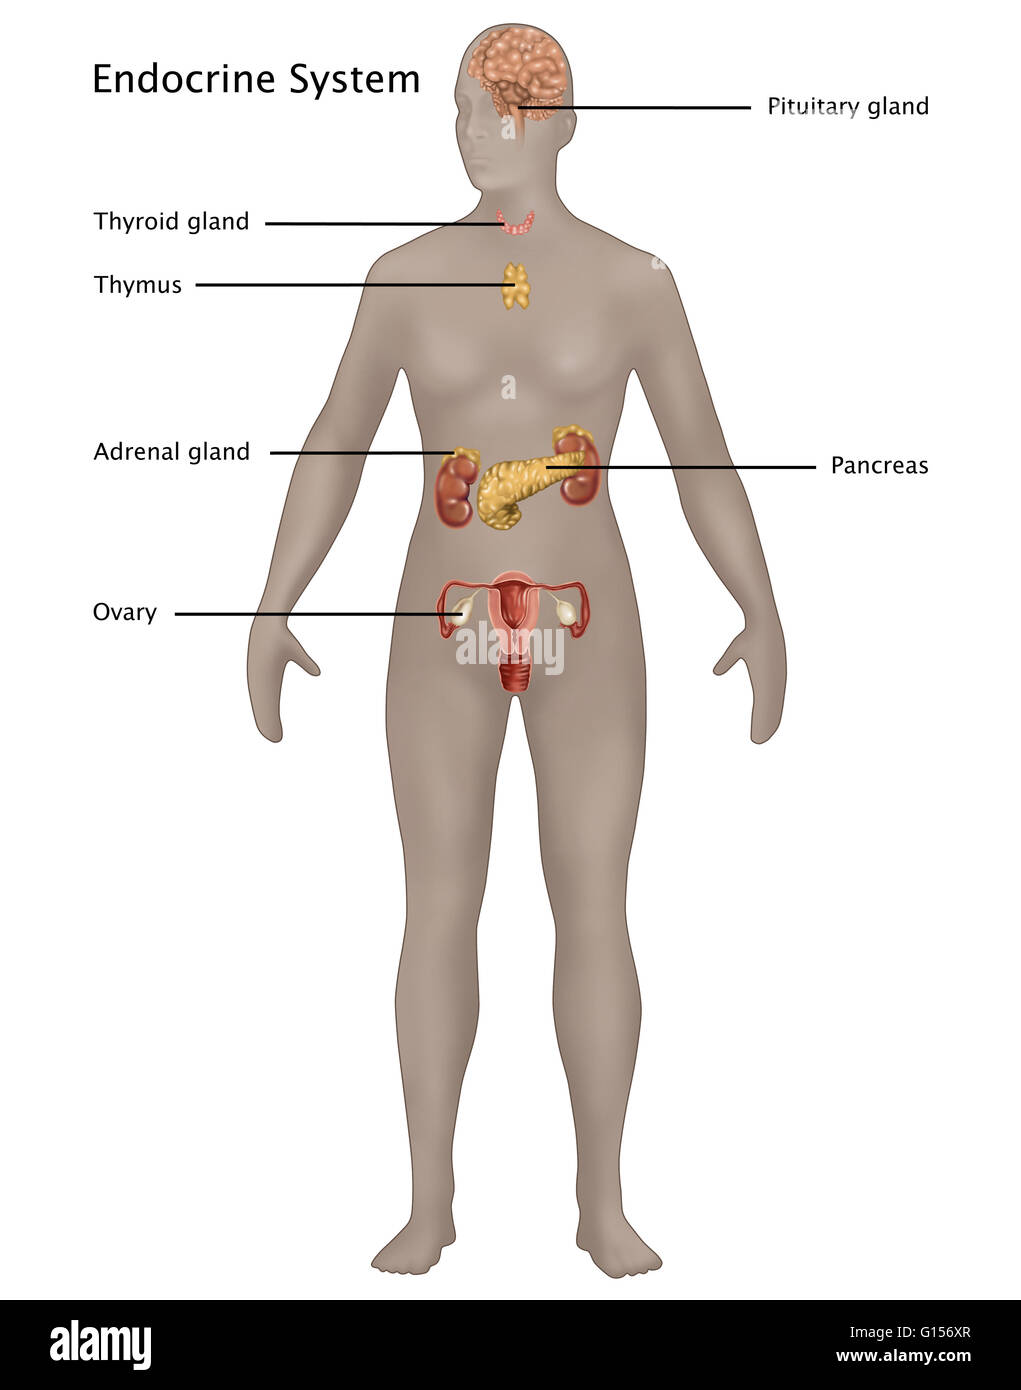 Female Endocrine System Stock Photos Female Endocrine System Stock